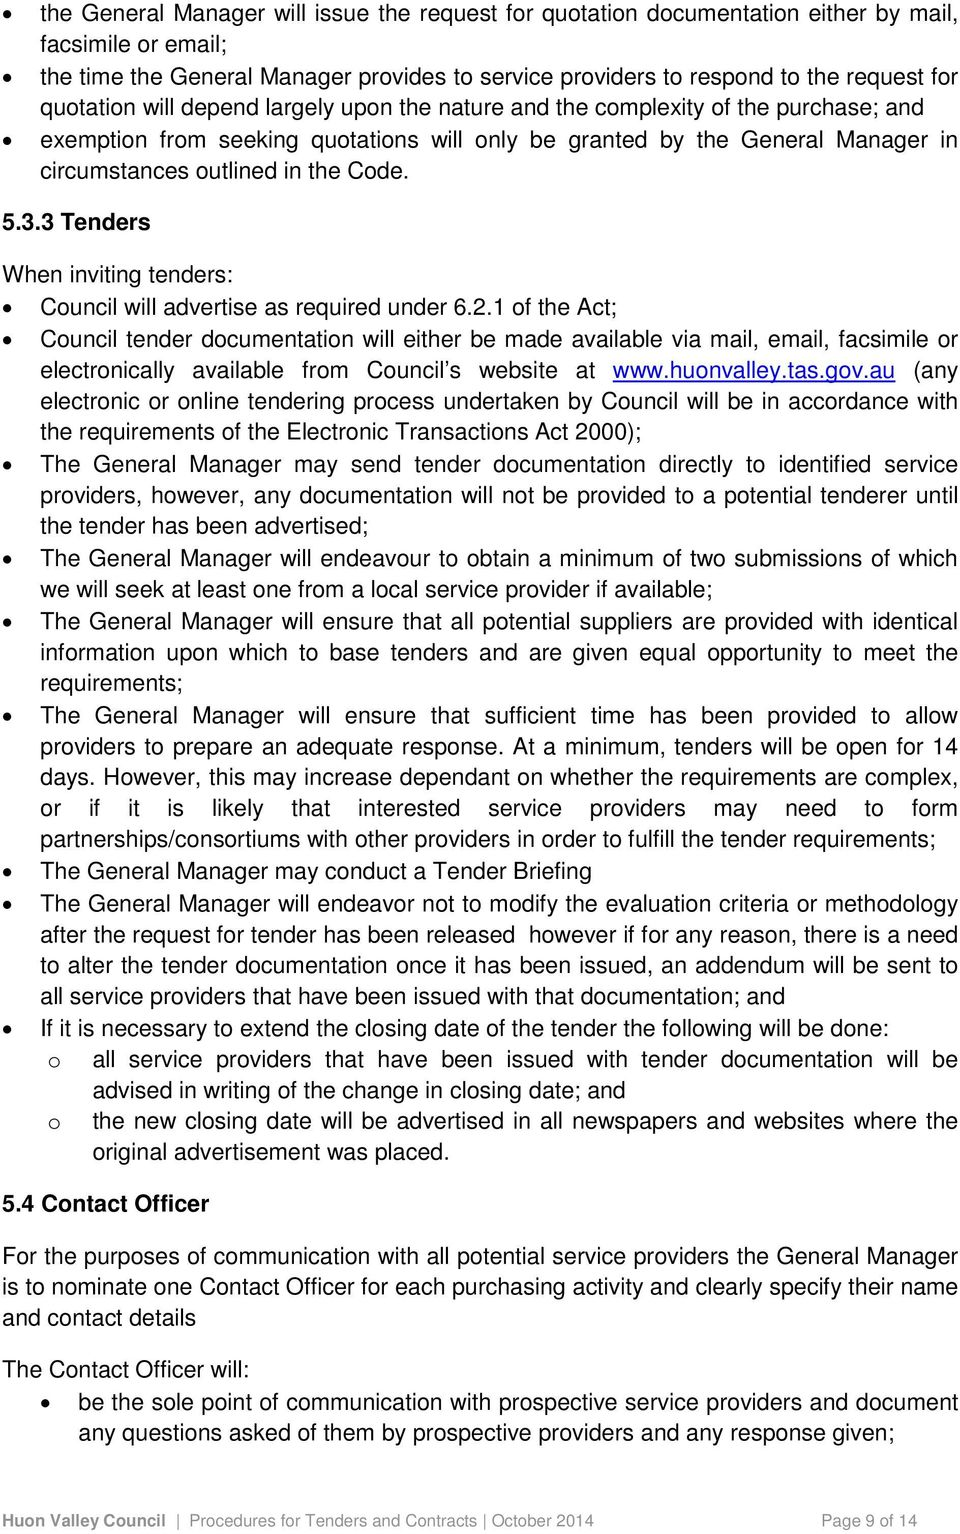 Code. 5.3.3 Tenders When inviting tenders: Council will advertise as required under 6.2.